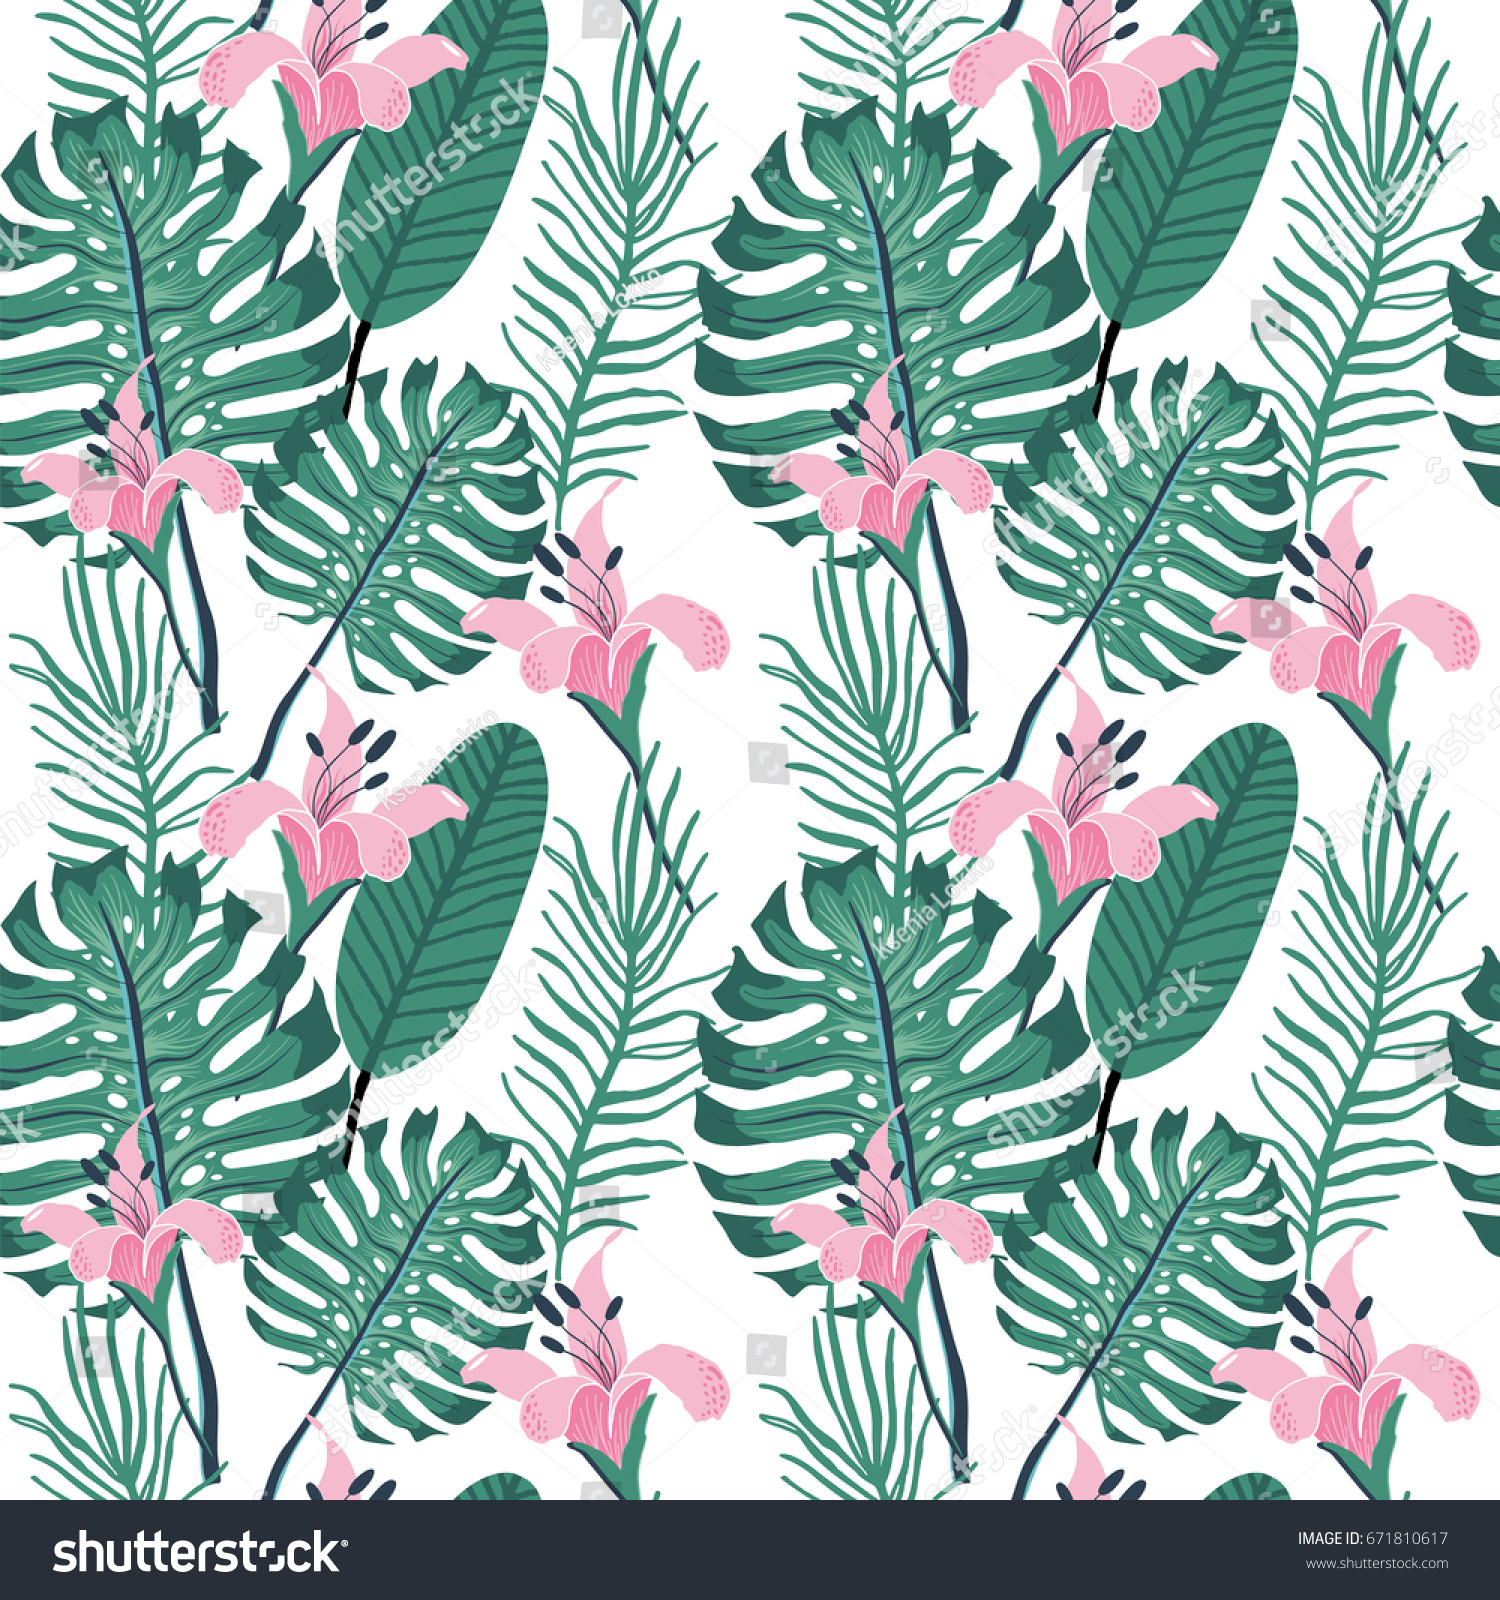 Beautiful Seamless Floral Summer Pattern Background Backgrounds